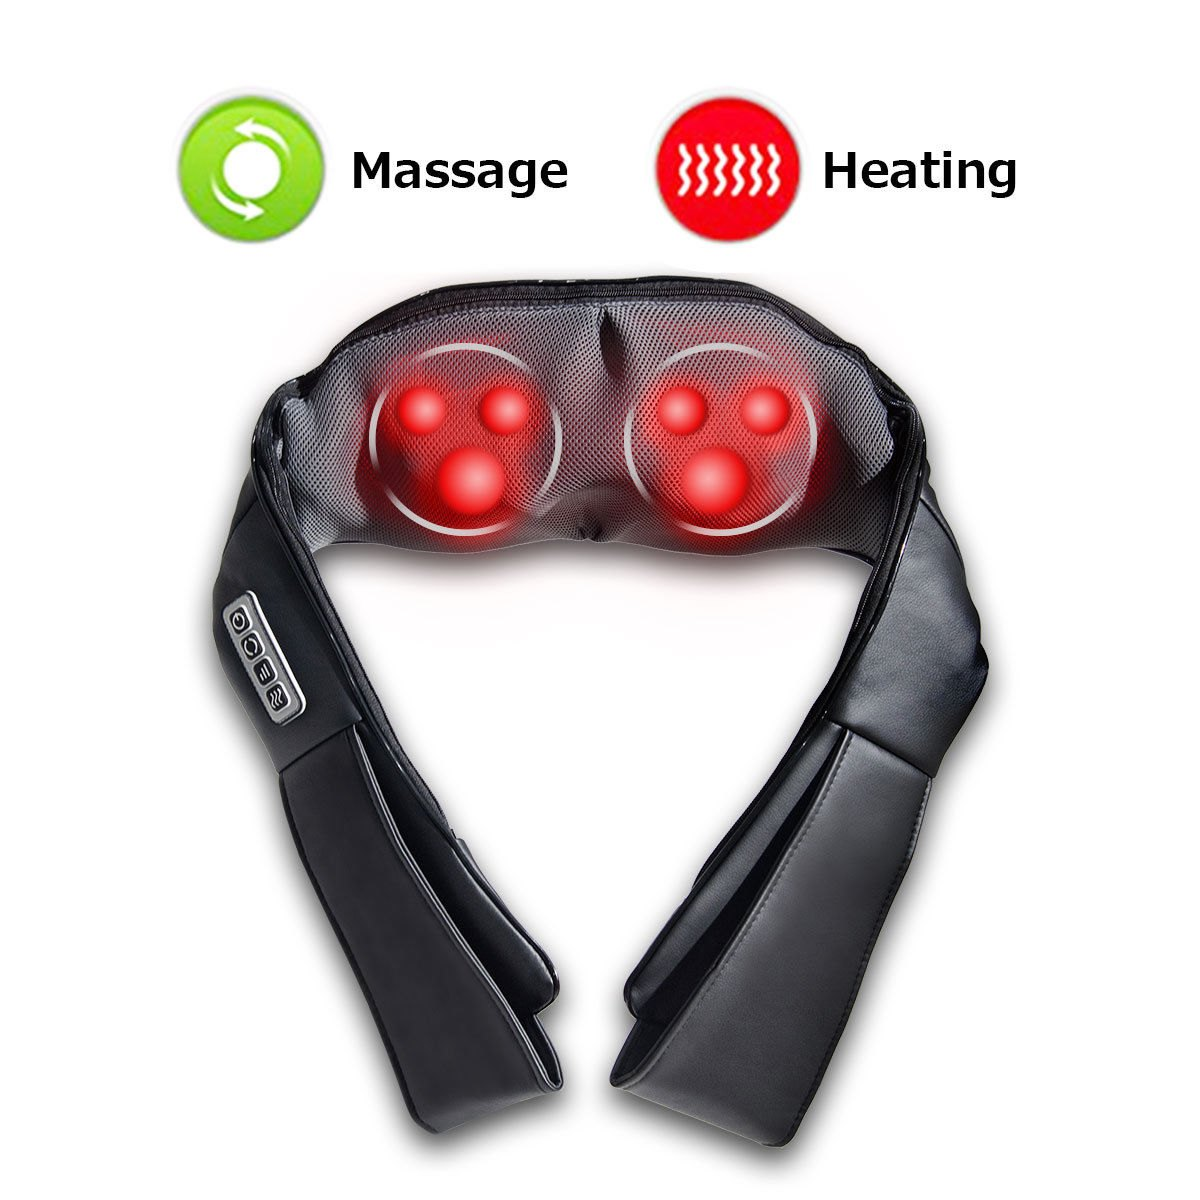 neck massager senior citizens magazine